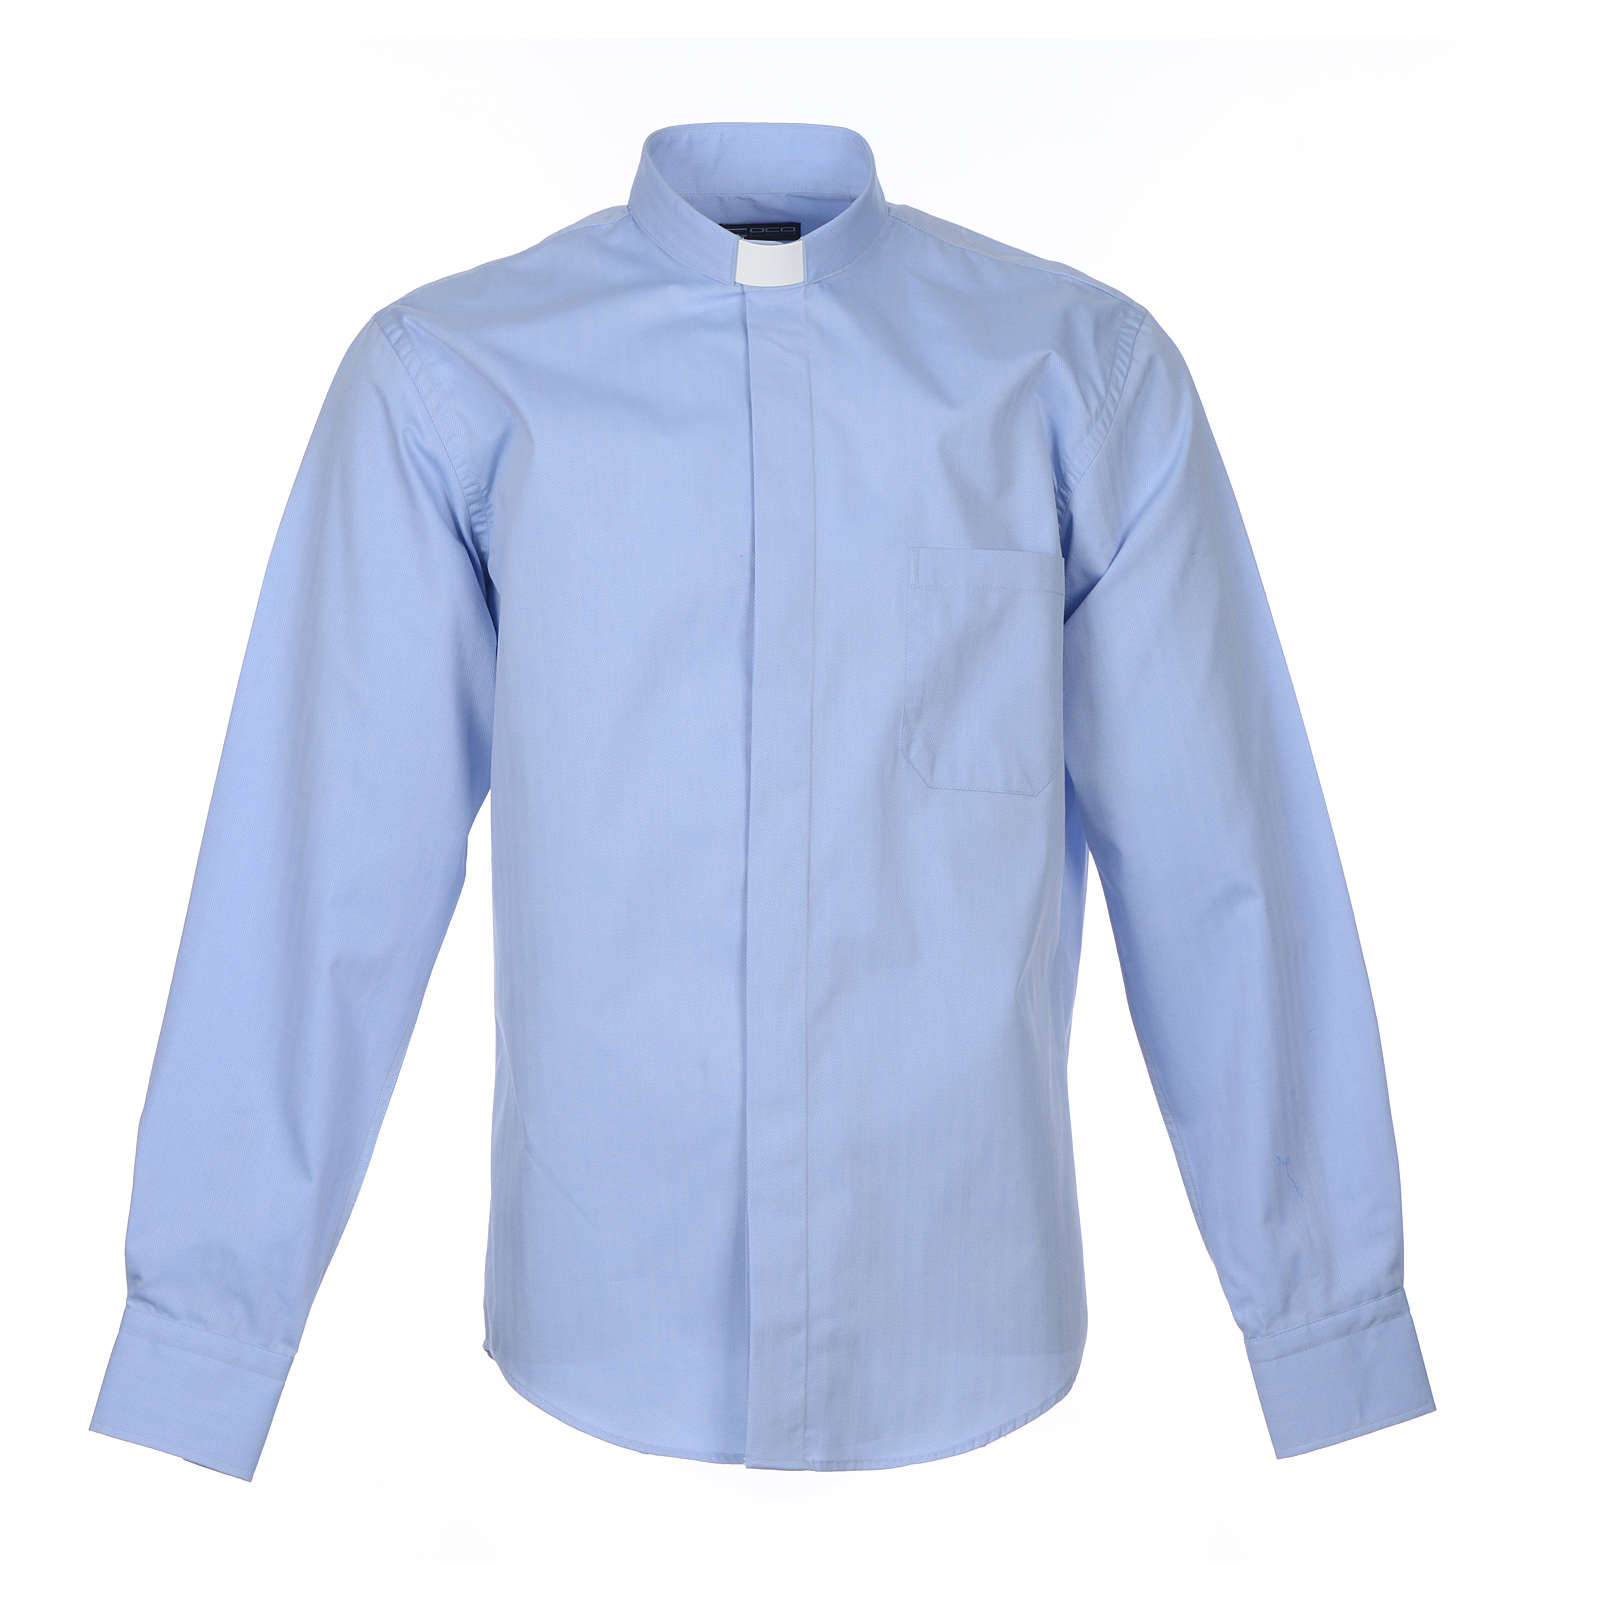 Clergy Light Blue Shirt with long sleeves easy-iron mixed herringbone cotton 4